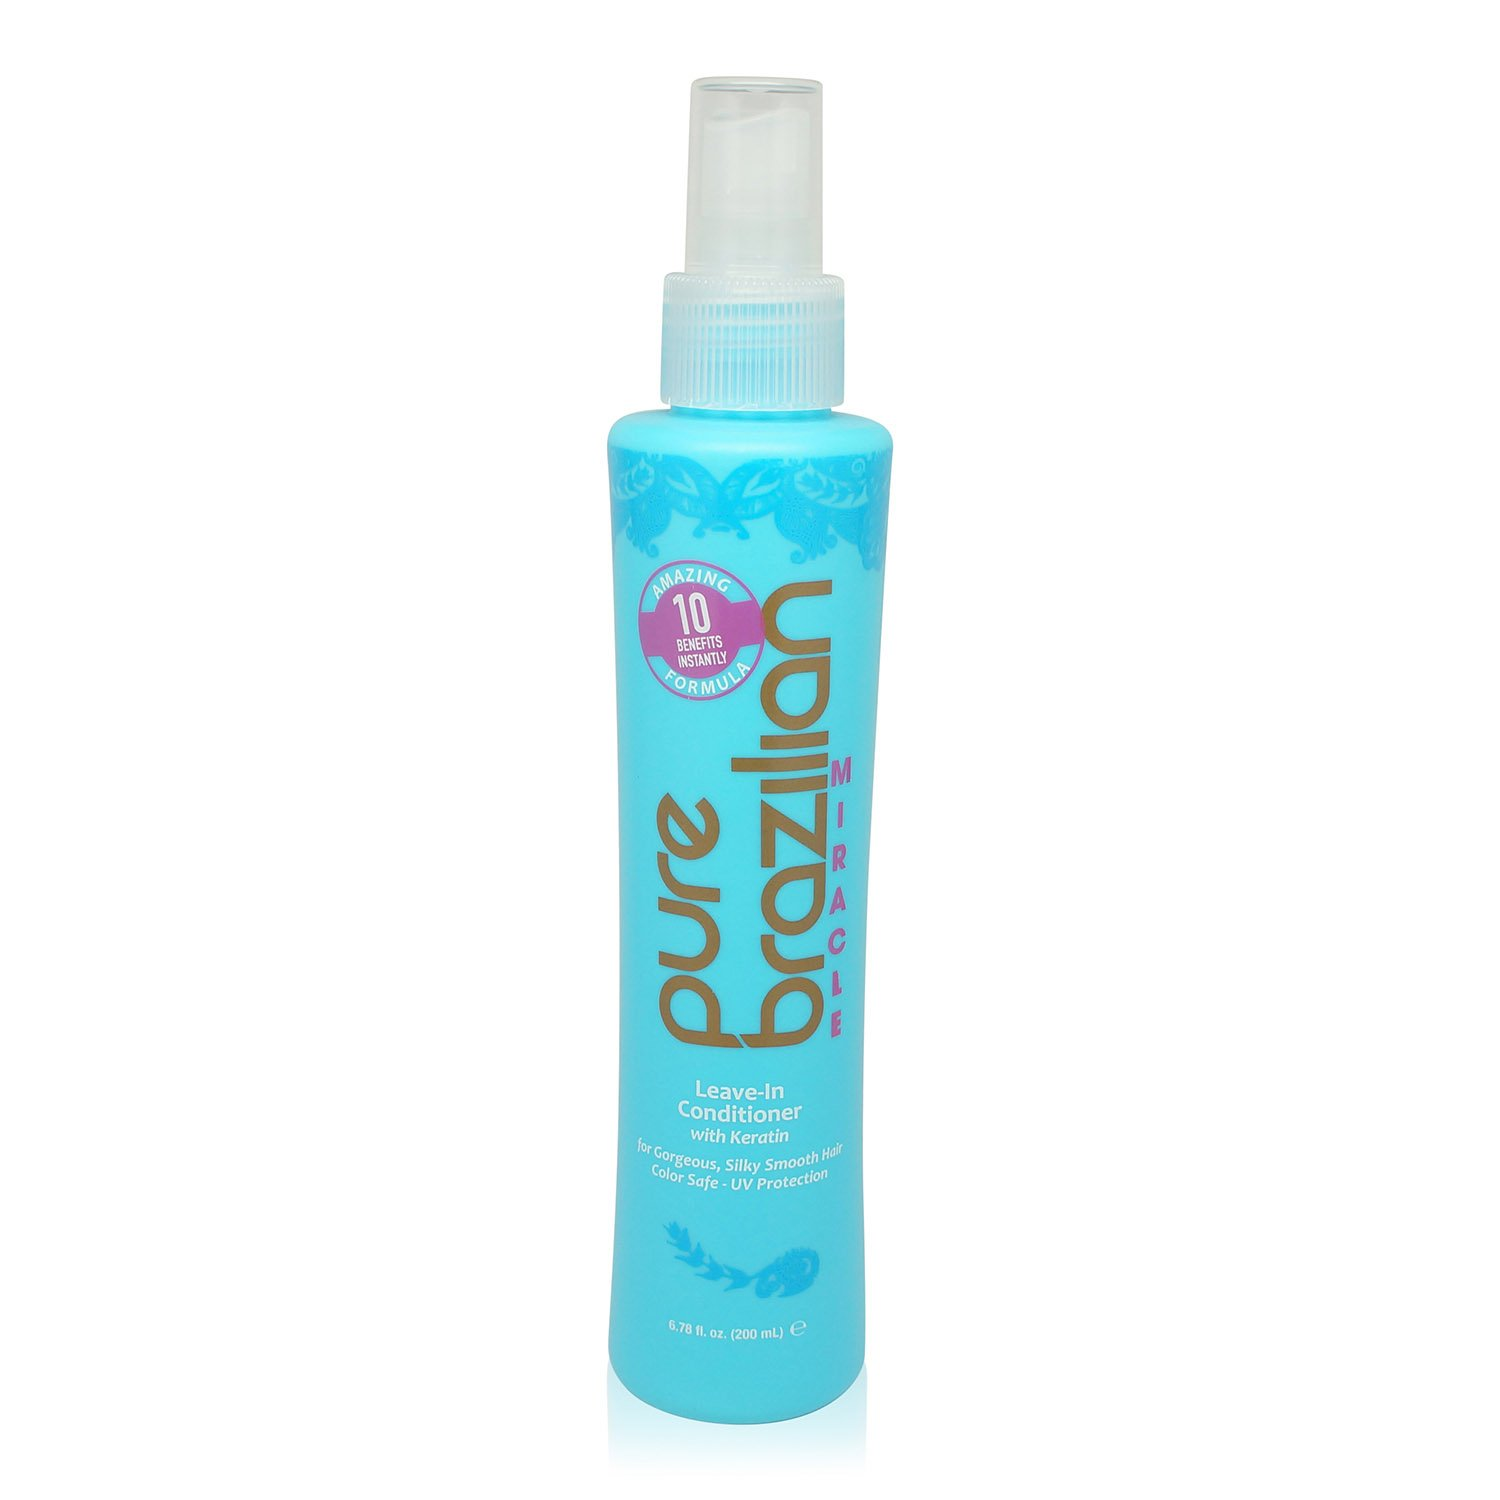 Pure Brazilian - Miracle Leave In Conditioner with Keratin (6.78 Fluid Ounce)